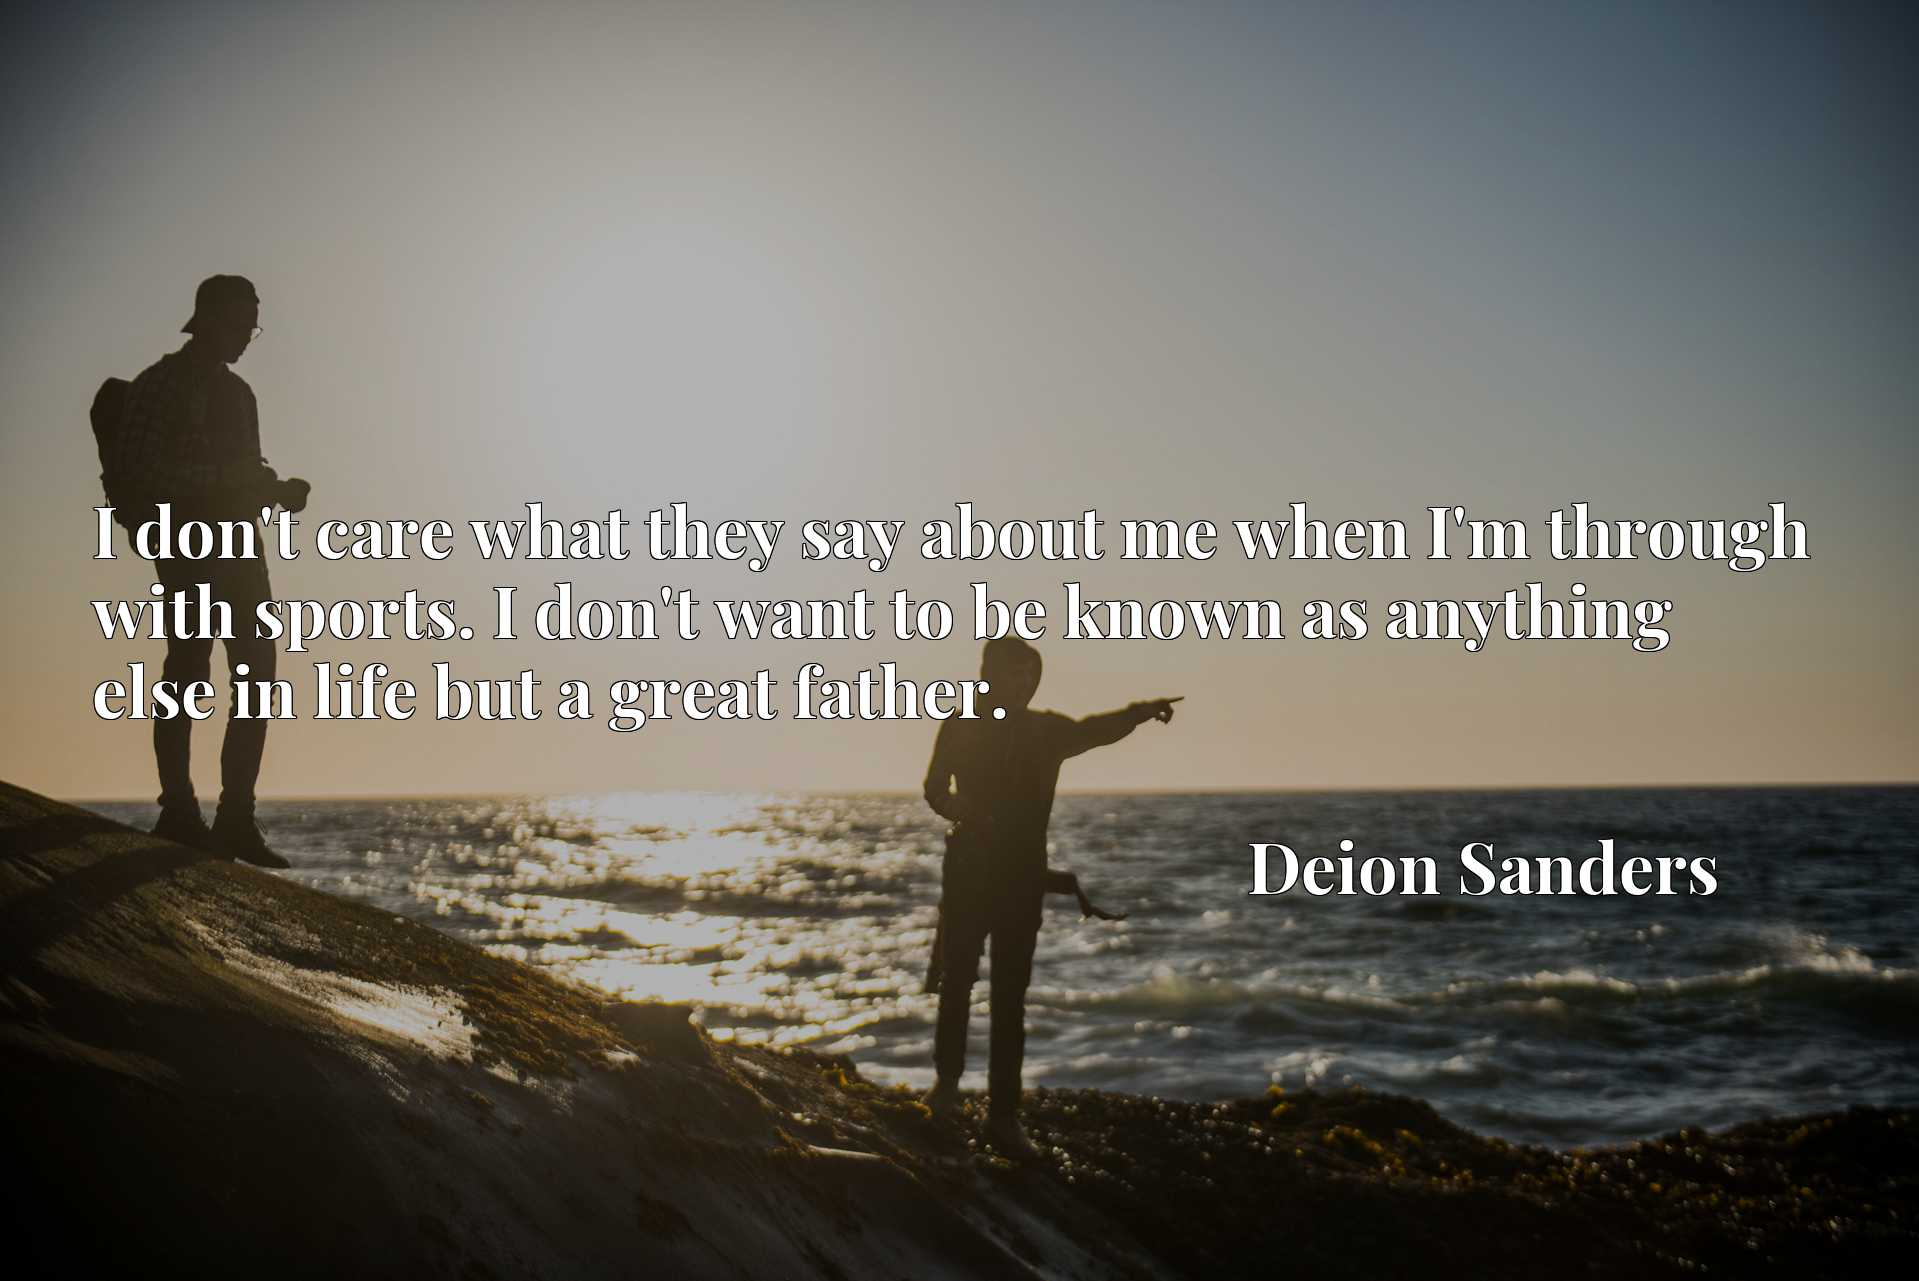 Quote Picture :I don't care what they say about me when I'm through with sports. I don't want to be known as anything else in life but a great father.